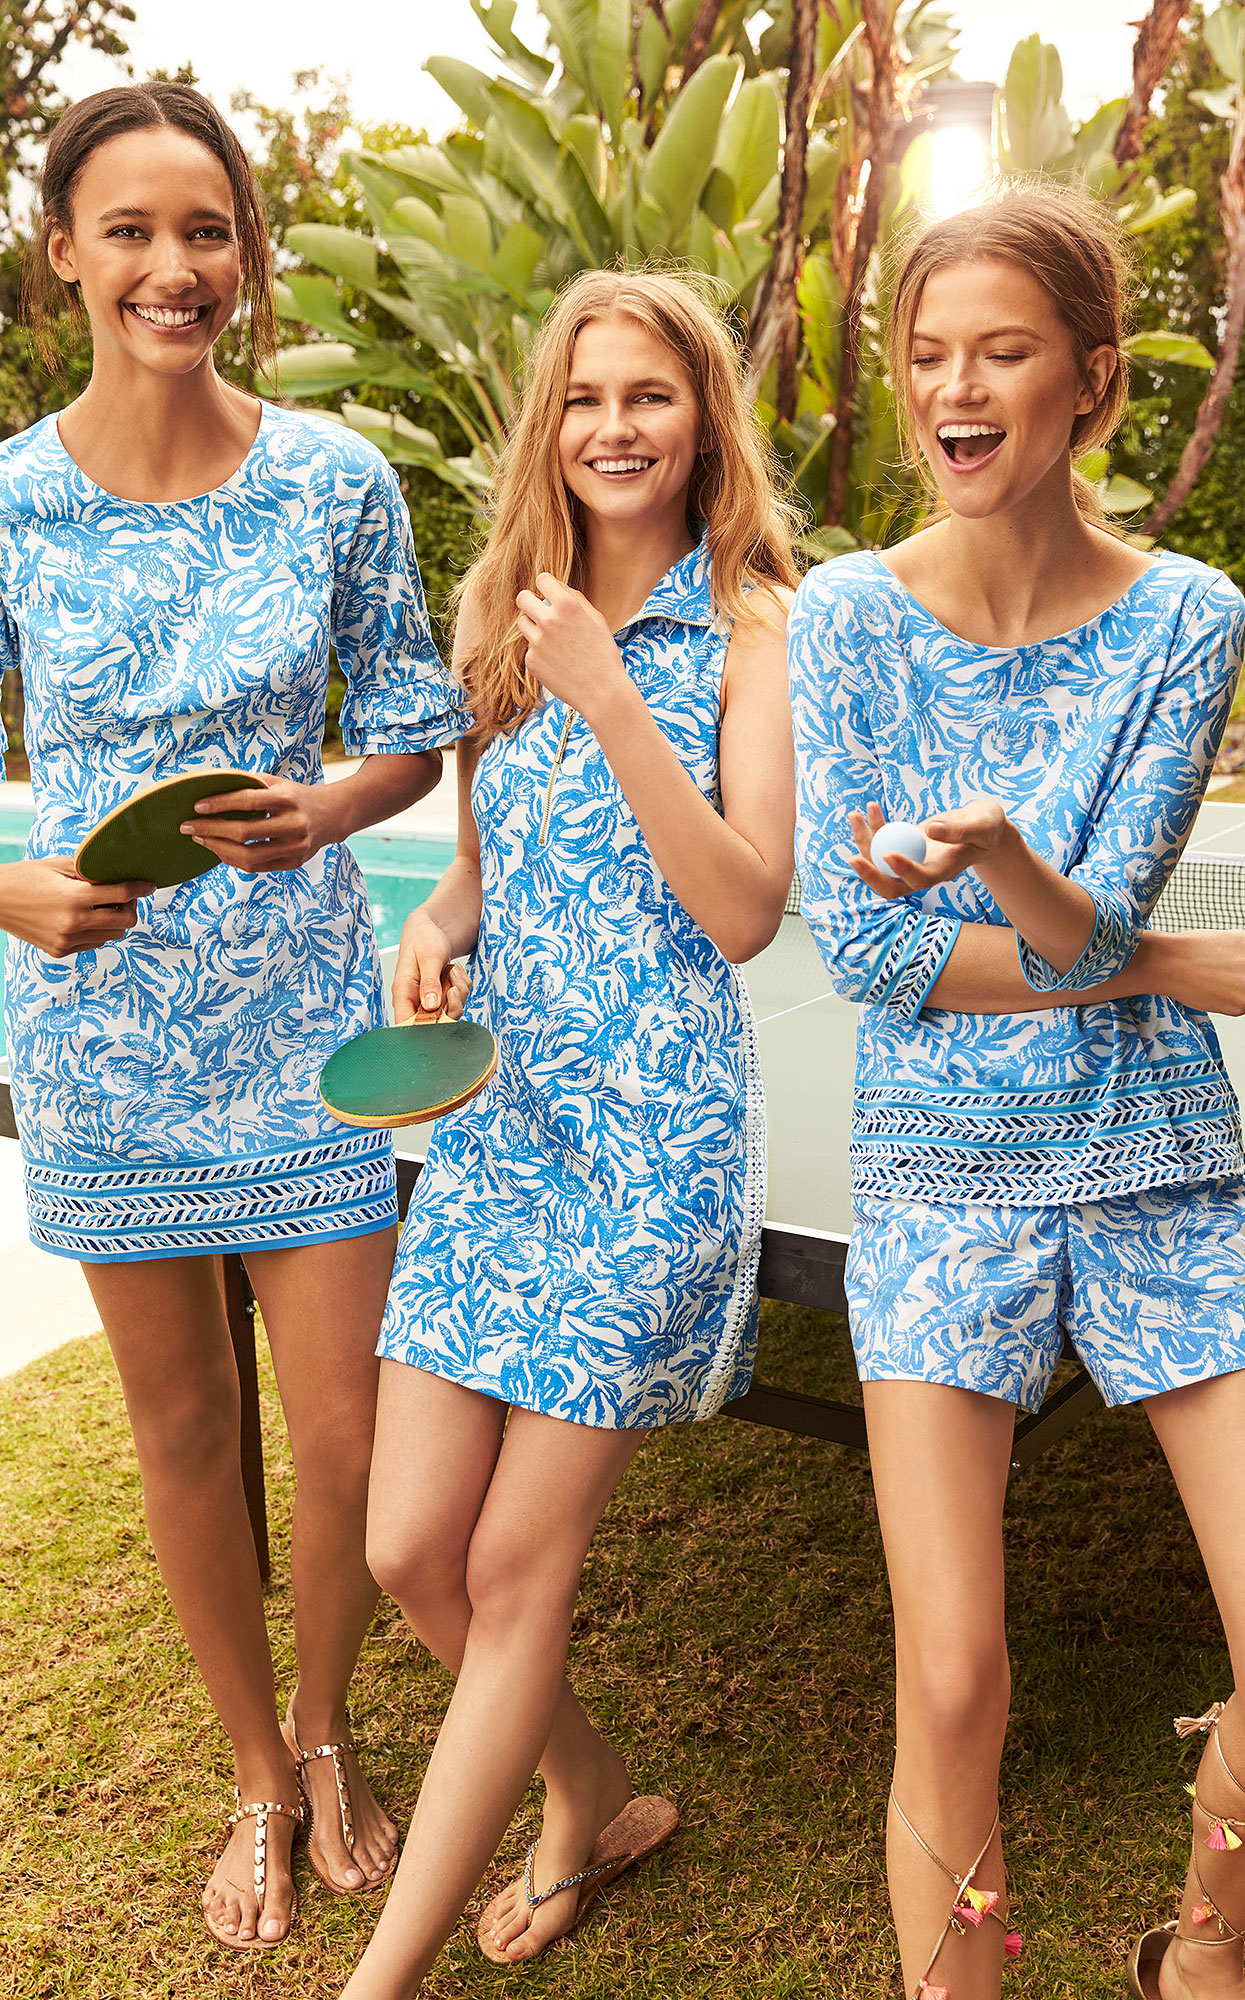 Shopping: Lilly Pulitzer's Summer Collection Just Launched, Here's Everything We're Buying ASAP